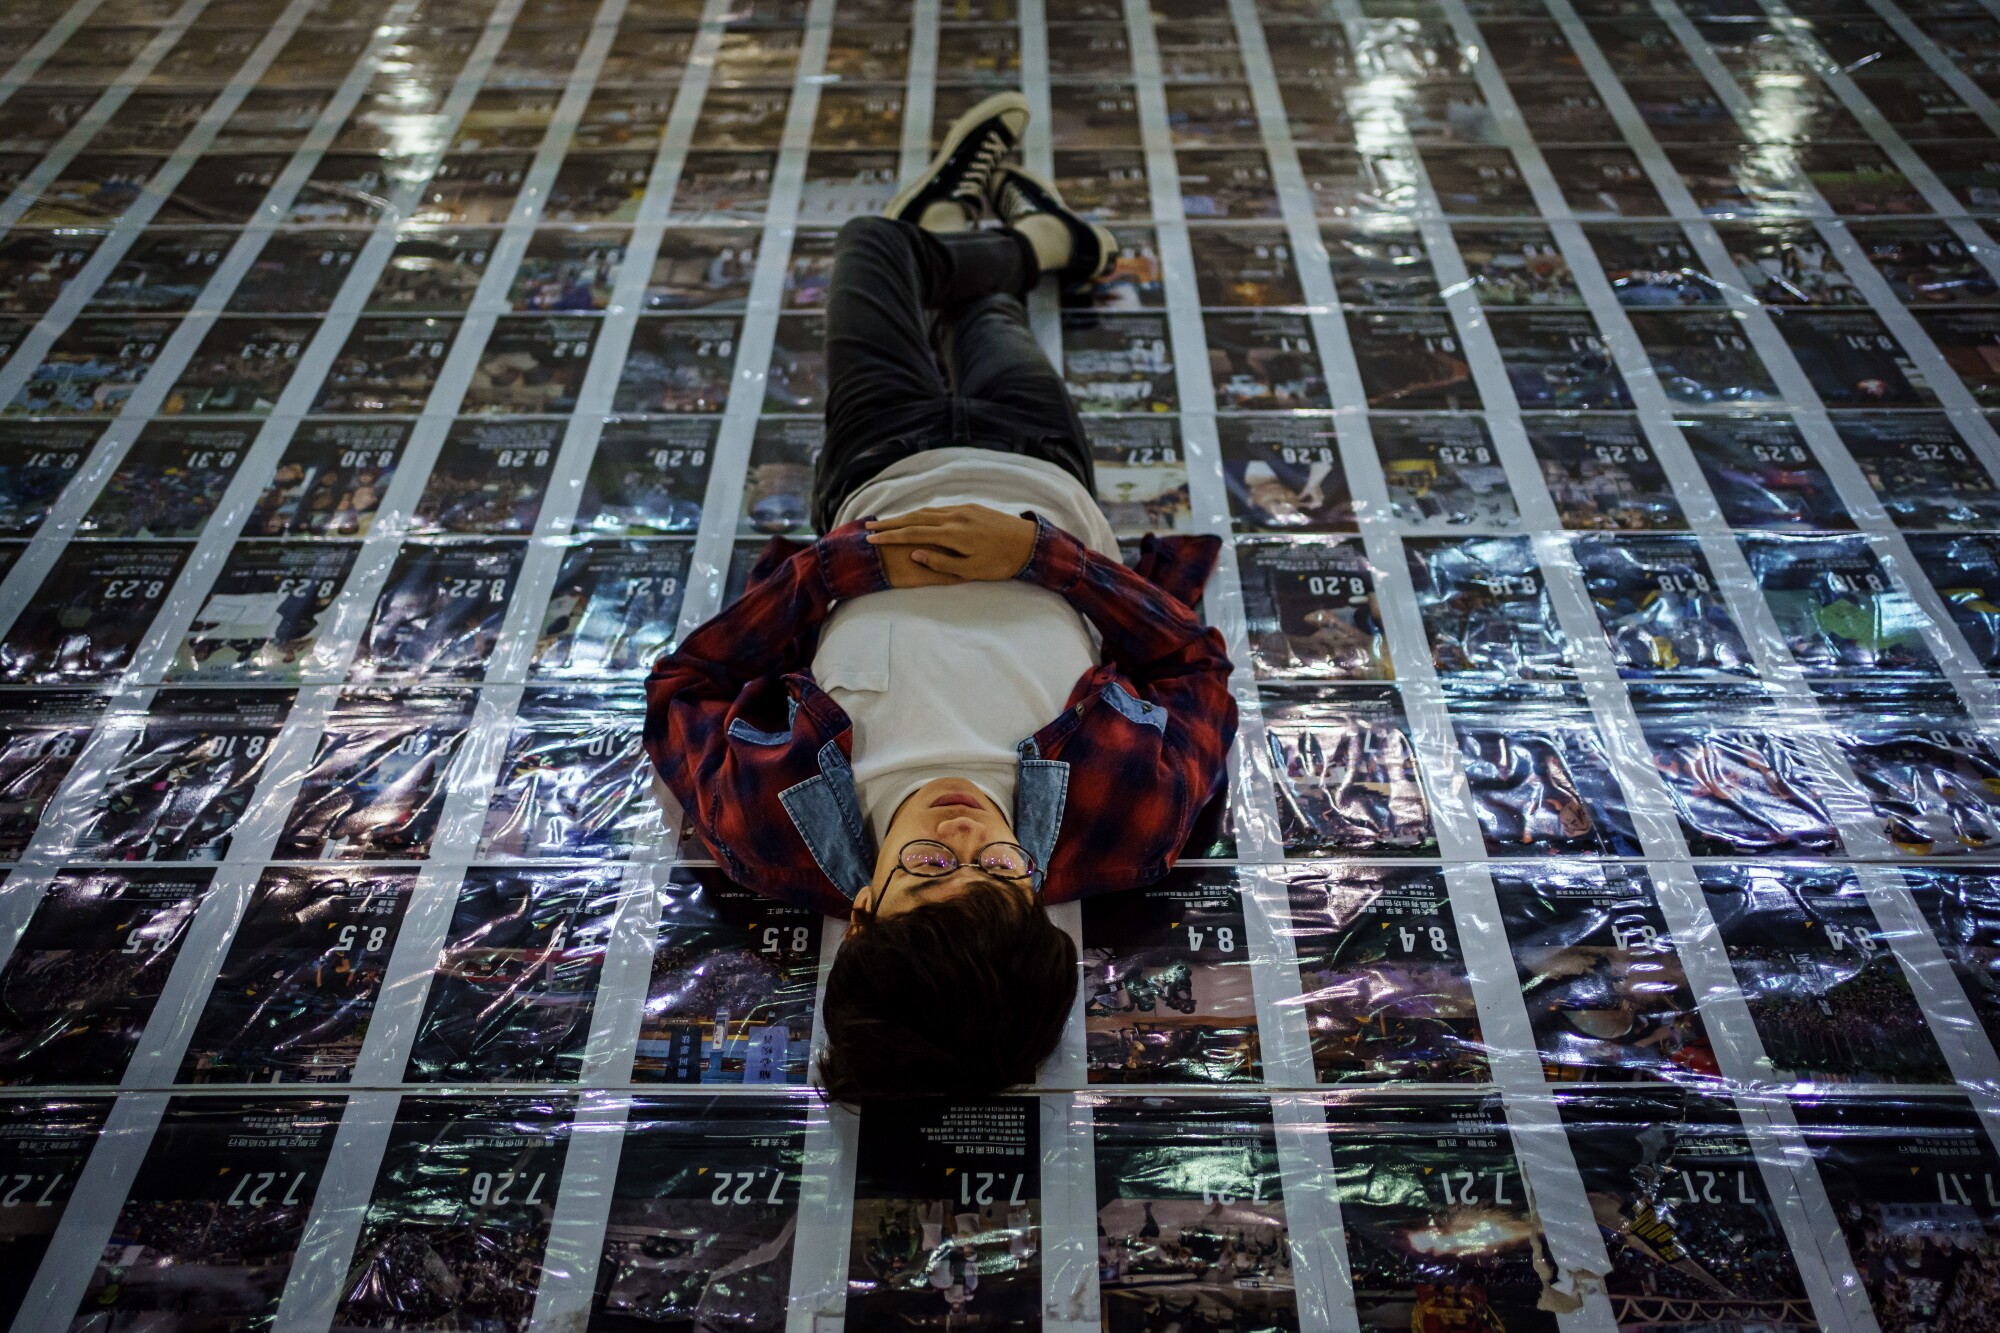 Ben Chan, a vocalist for the band Boyz Reborn, lies down on protest posters at his college.